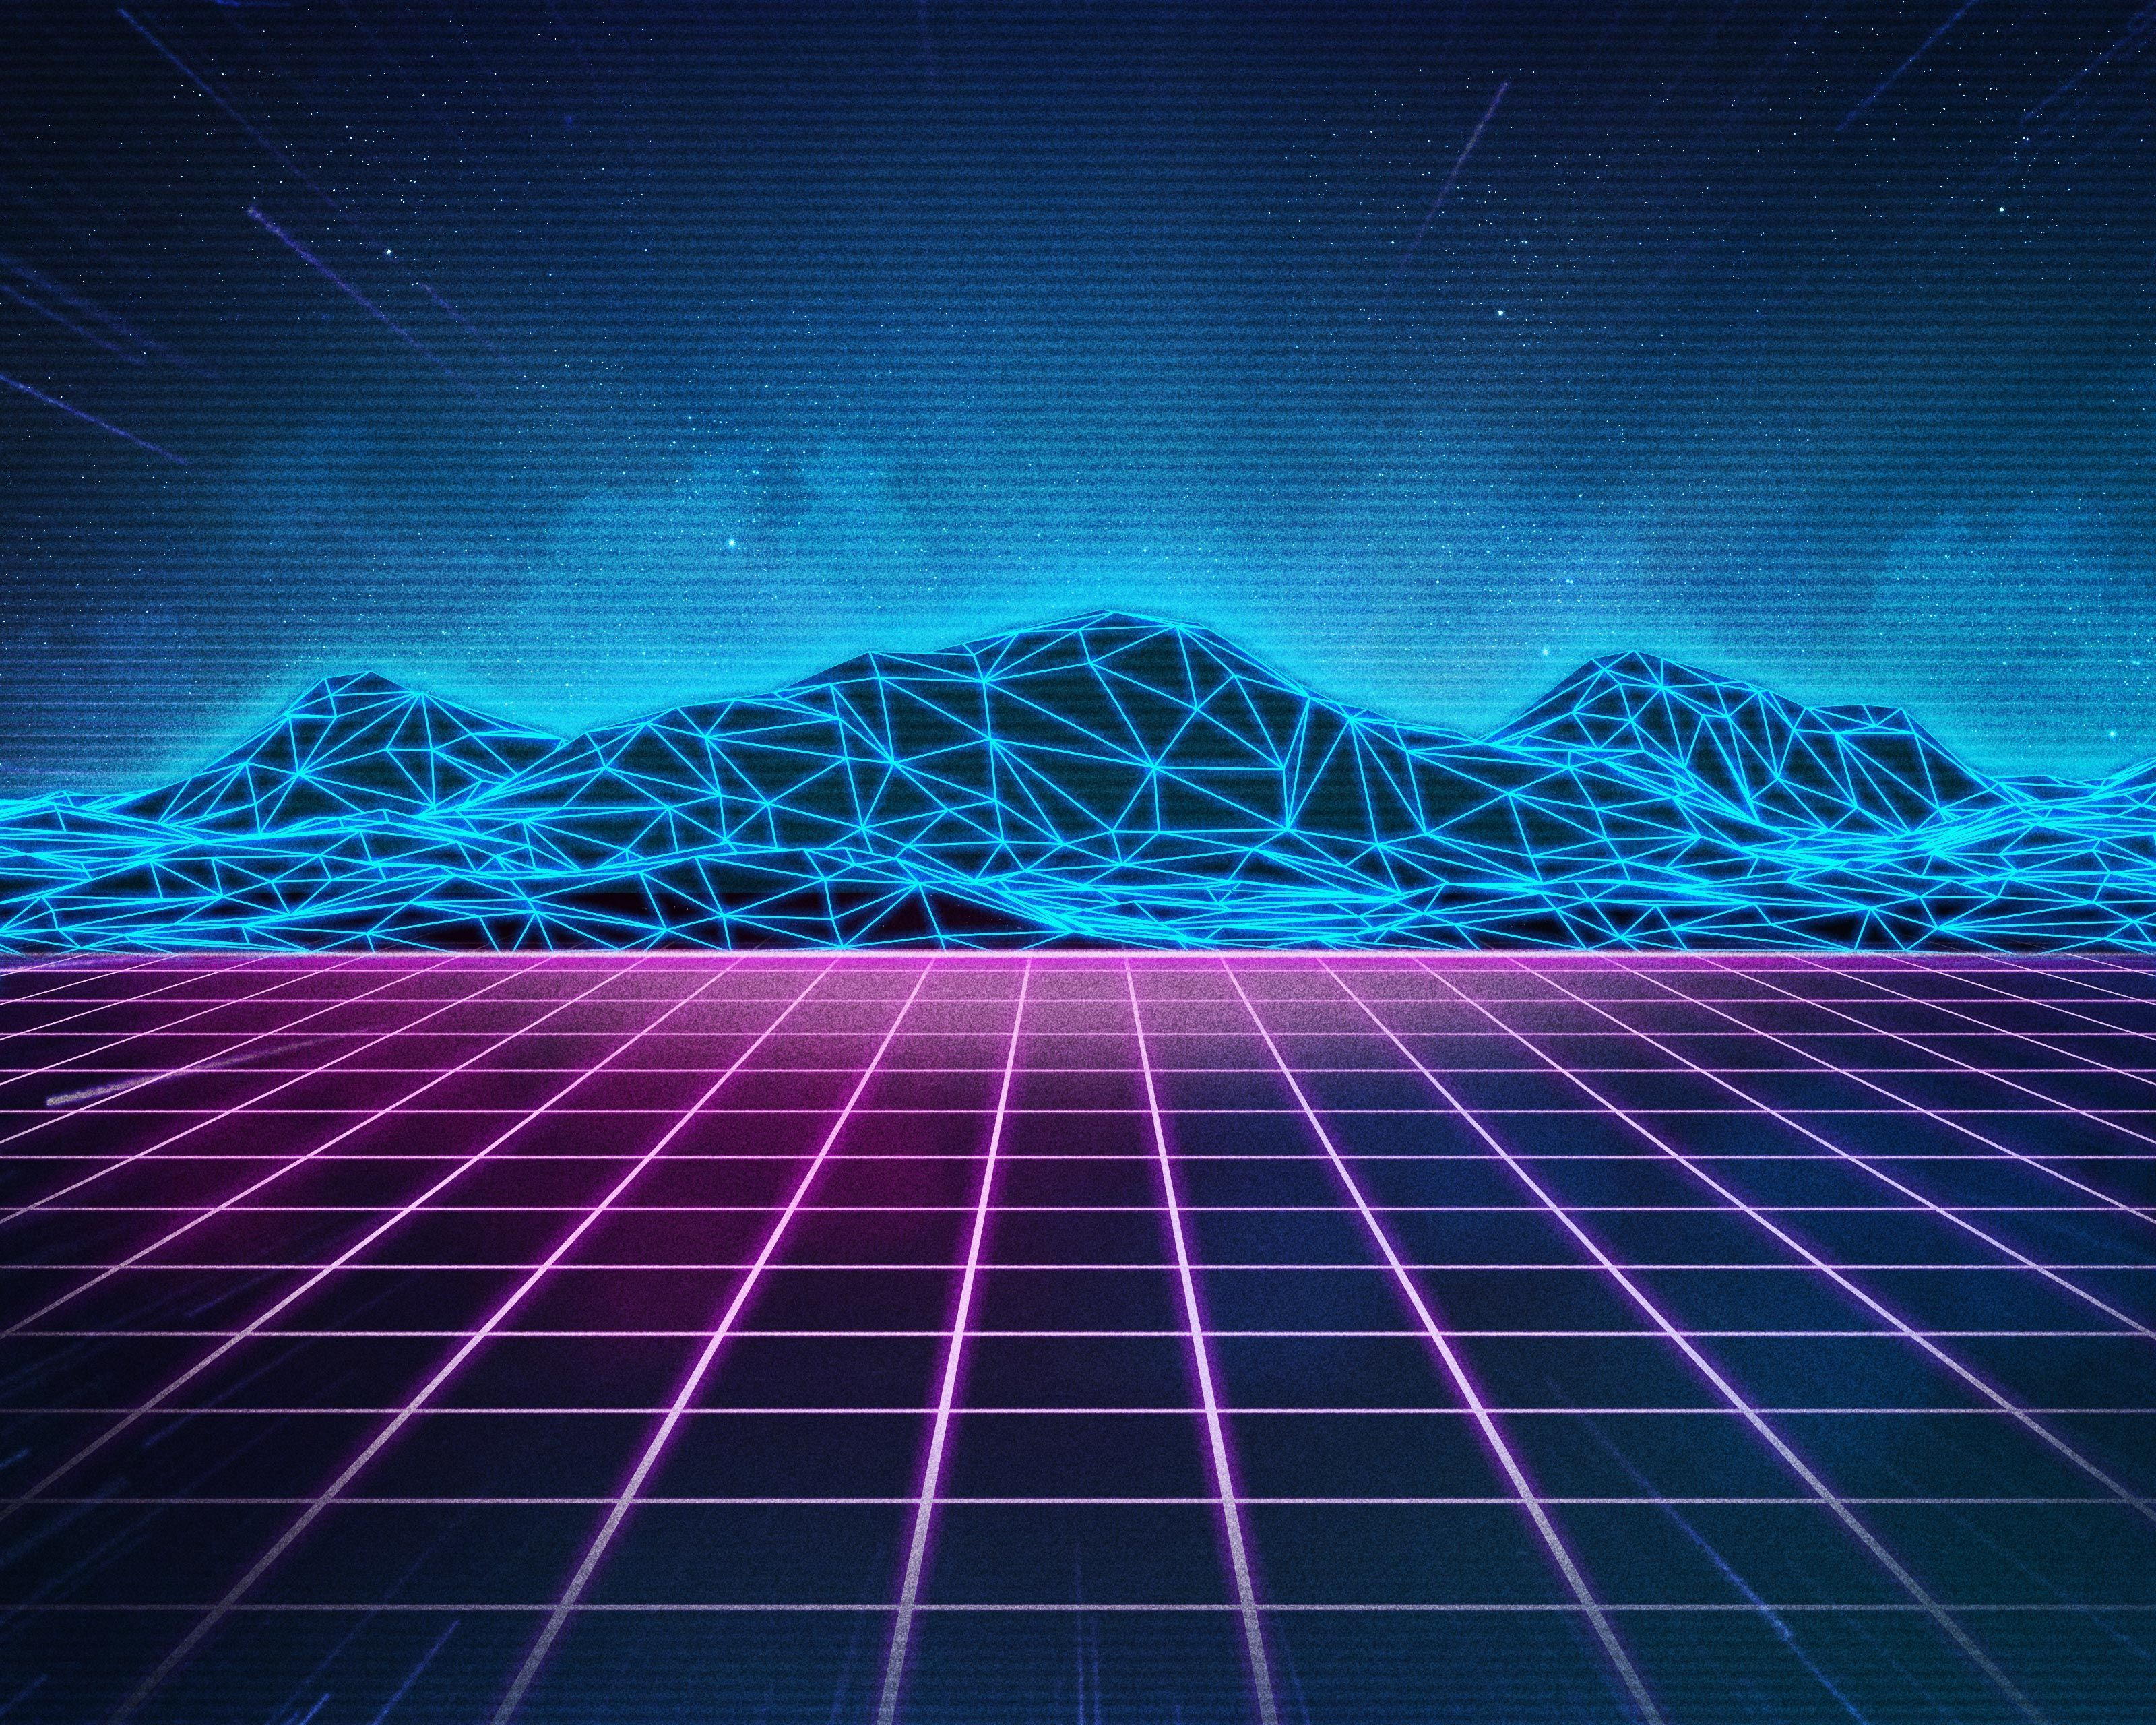 80s Aesthetic Wallpaper 107 images in Collection Page 2 3200x2560